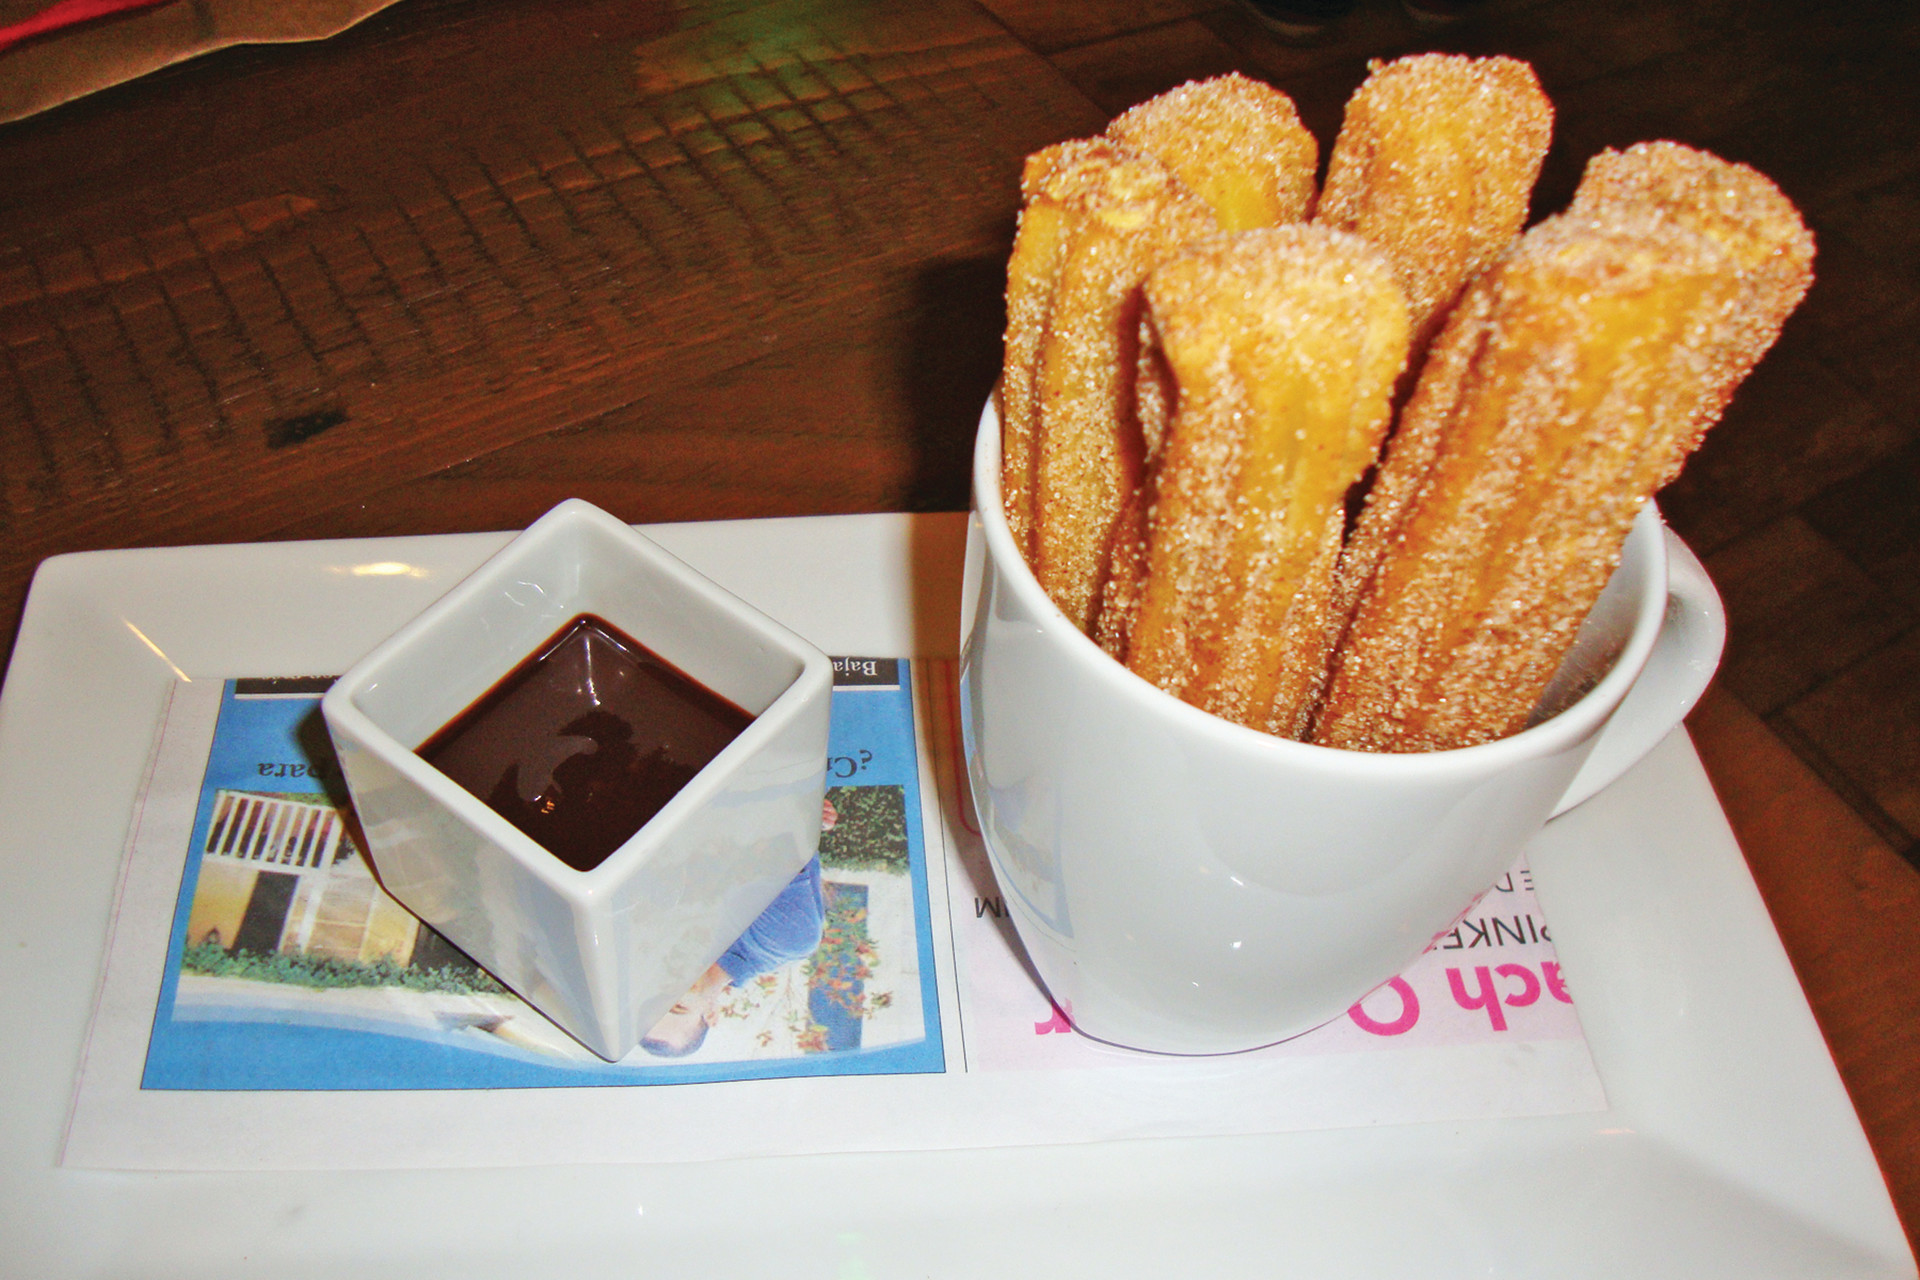 The cream-filled, cinnamon-sugar-dusted churro sticks are tasty and fun when dipped in warm chocolate sauce.